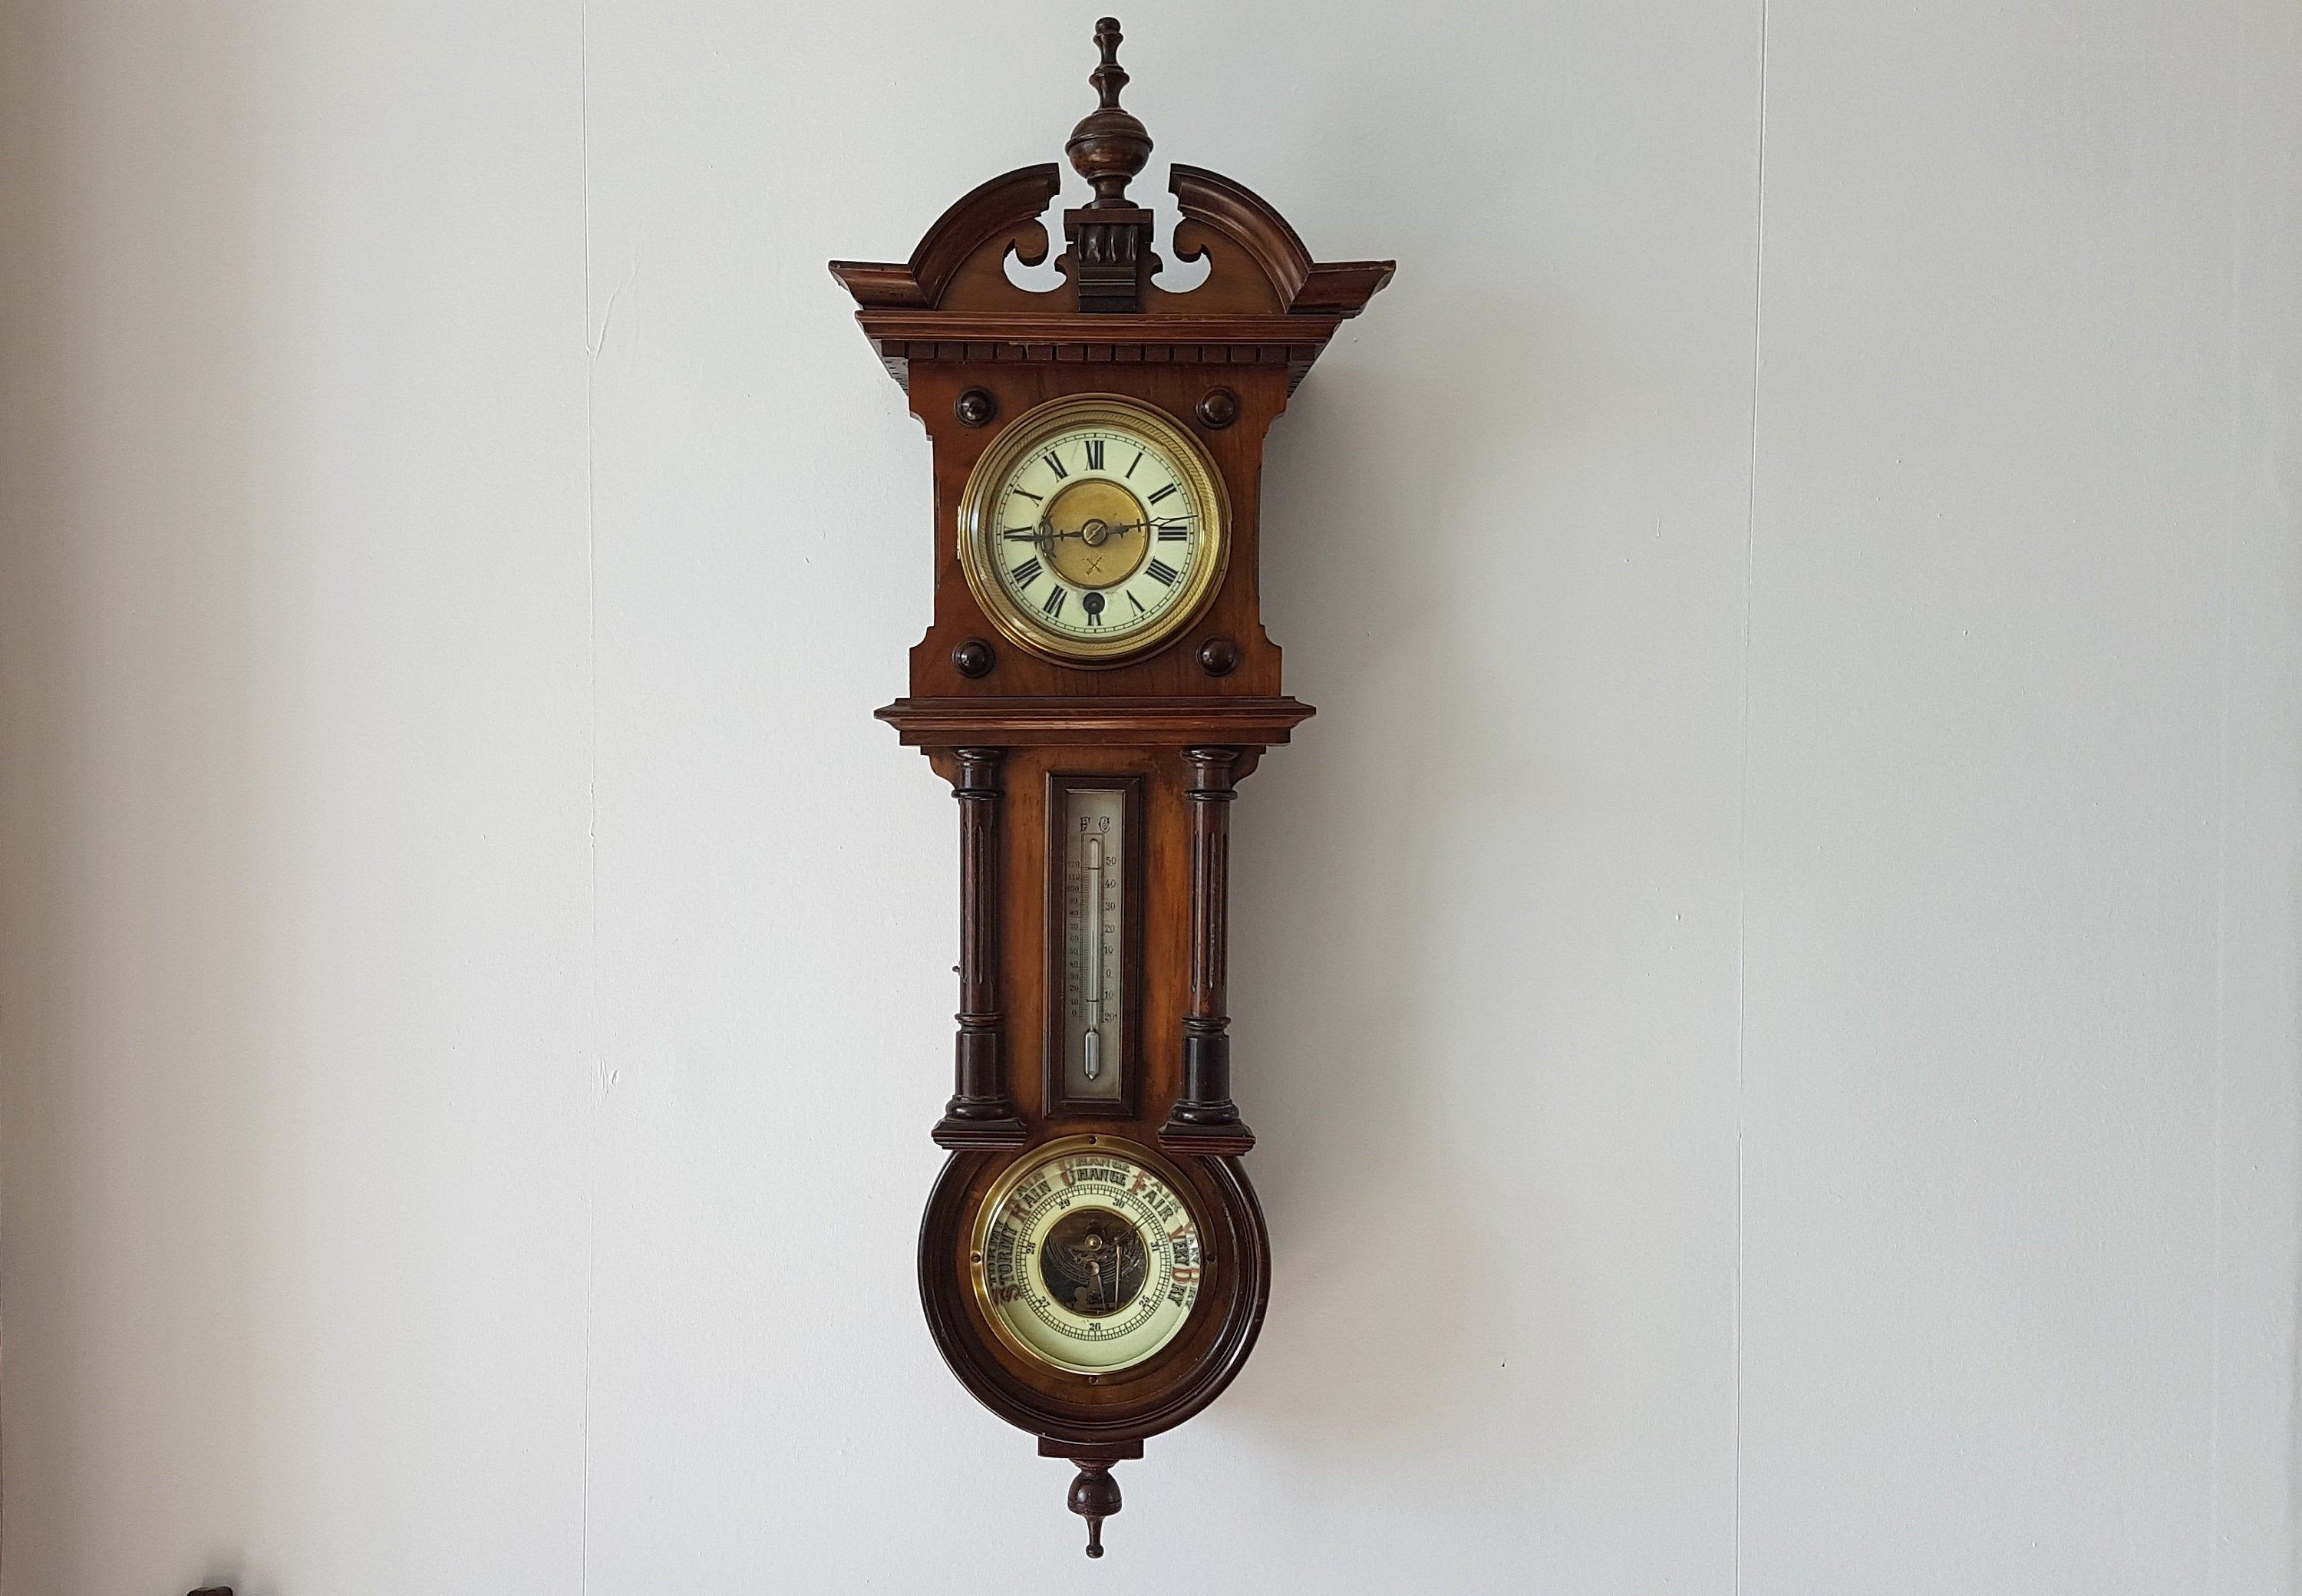 Antique Wall Clock Hac Wall Barometer Clock Victorian Wall Clock With Barometer And Thermometer Vintage Home Decor 2020 Victorian Wall Clocks Antique Wall Clock Vintage Home Decor